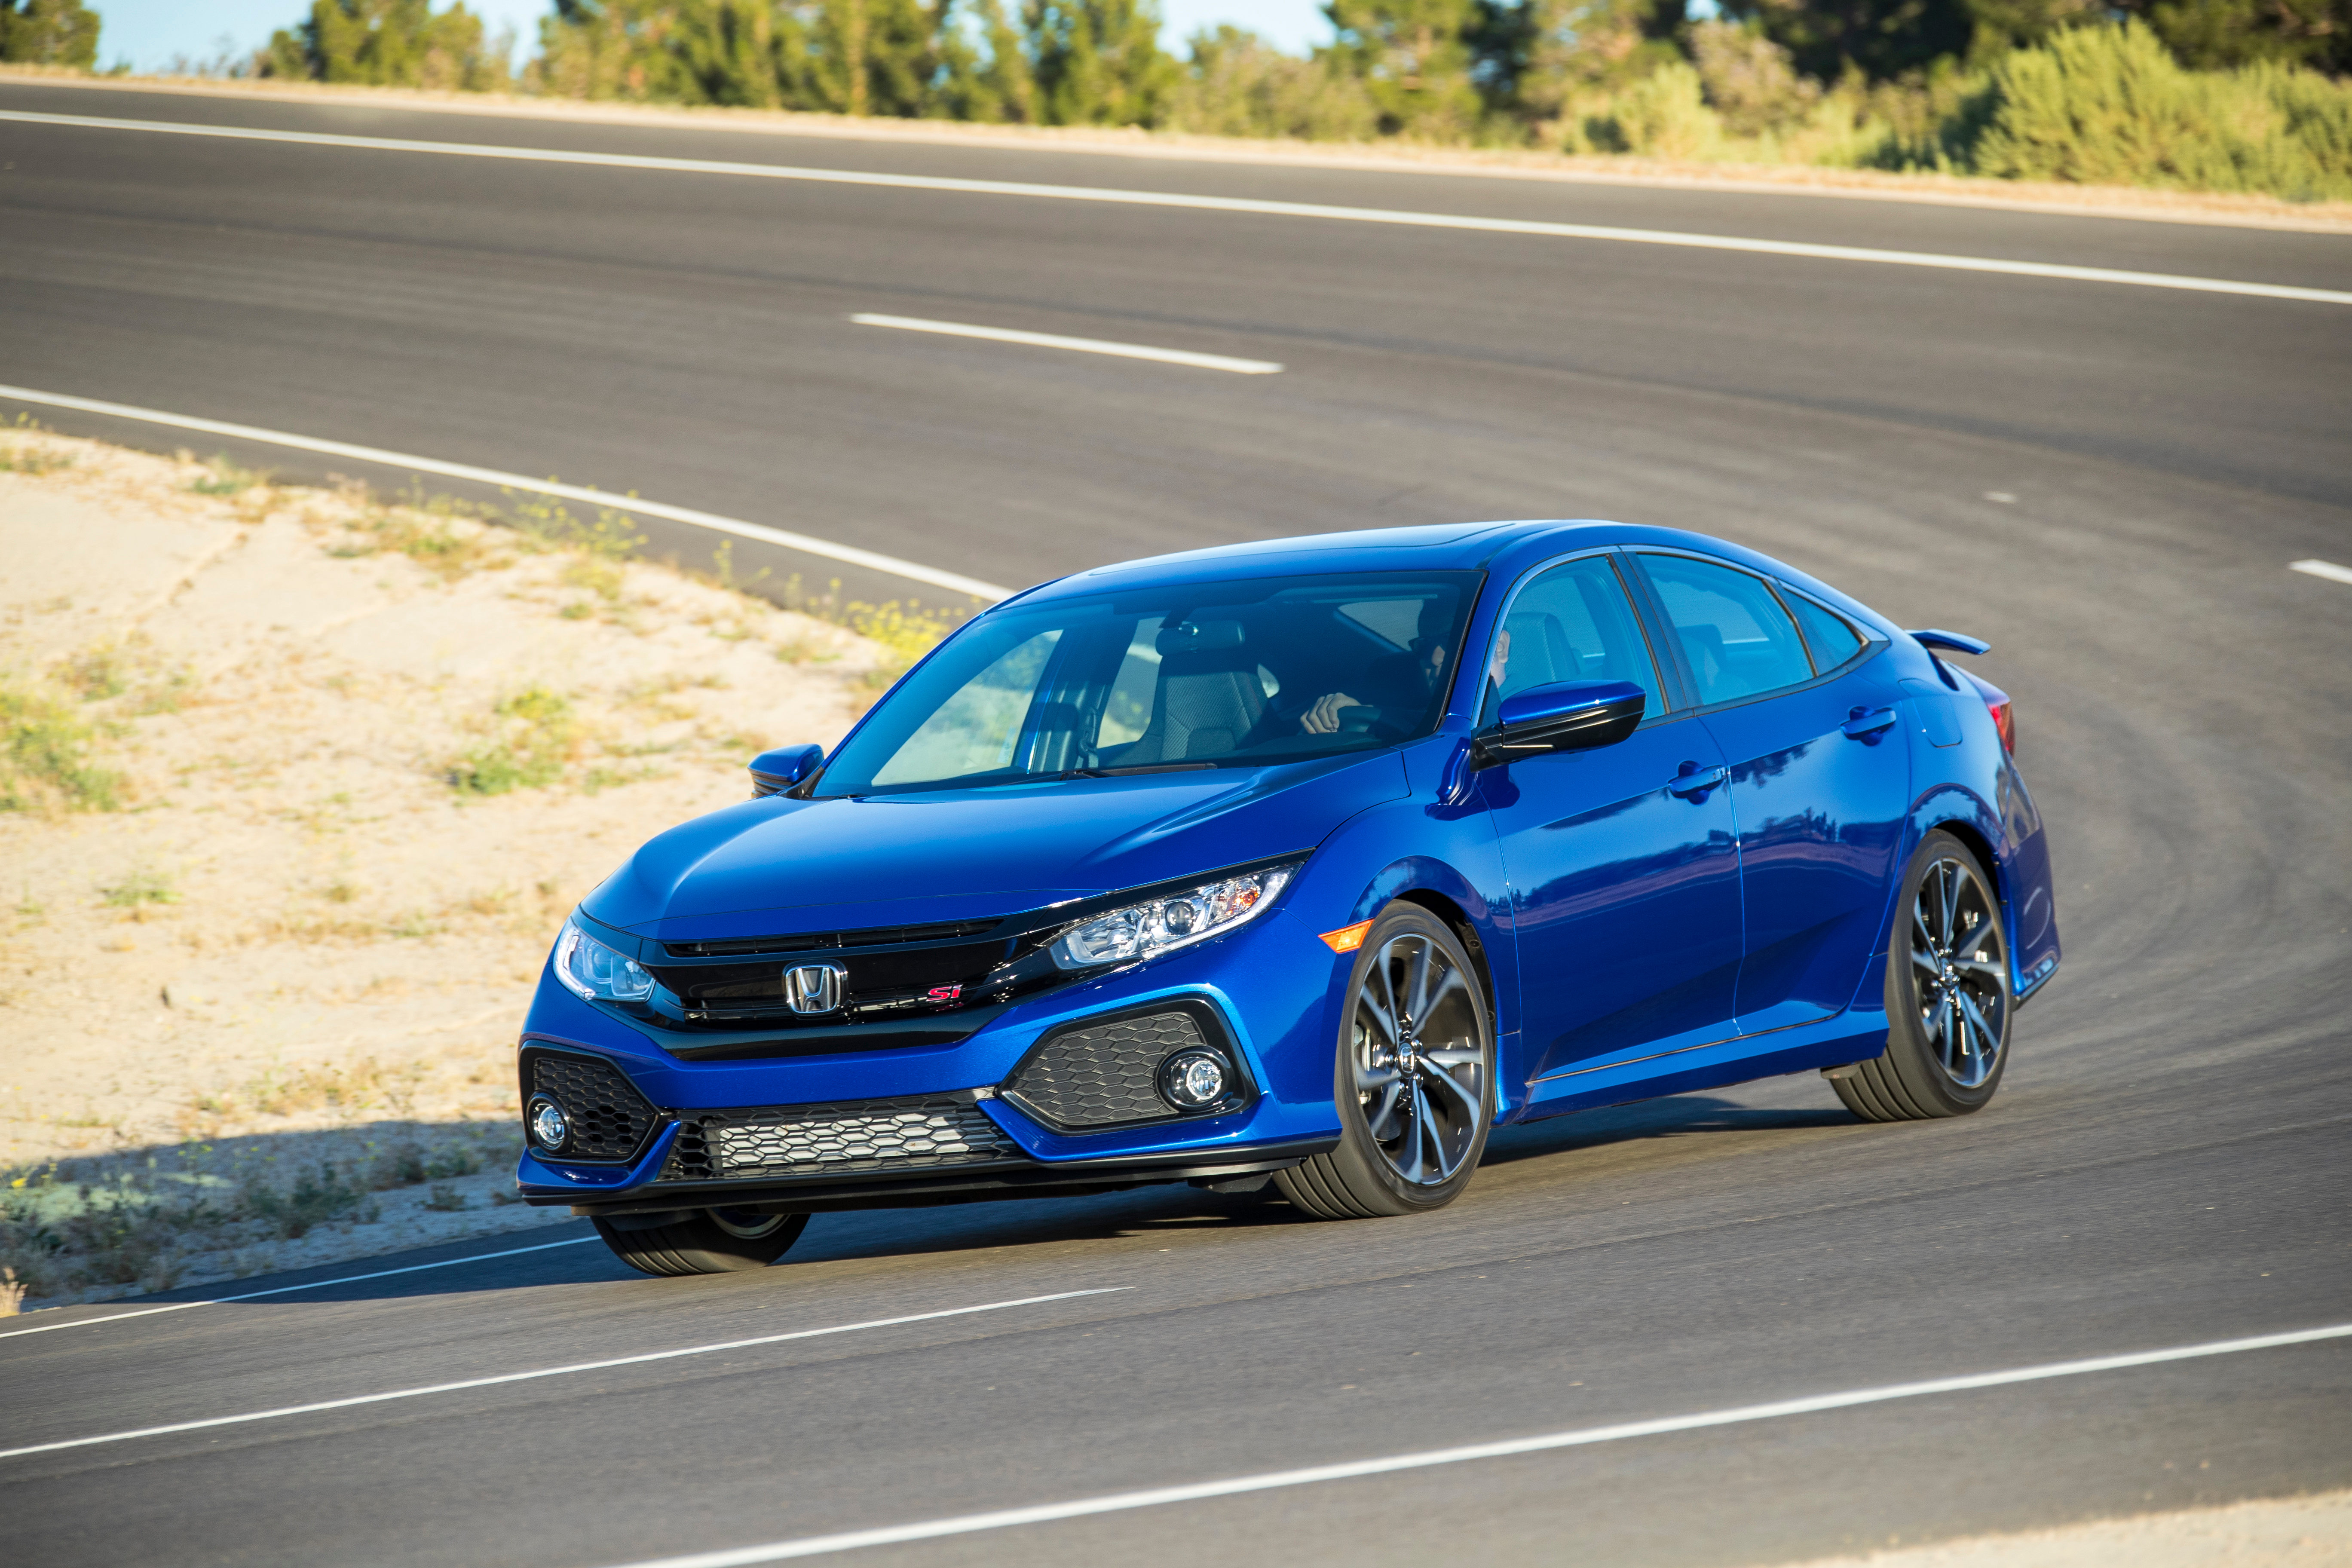 2020 Vw Jetta Gli Vs 2019 Honda Civic Si Sedan Top Speed